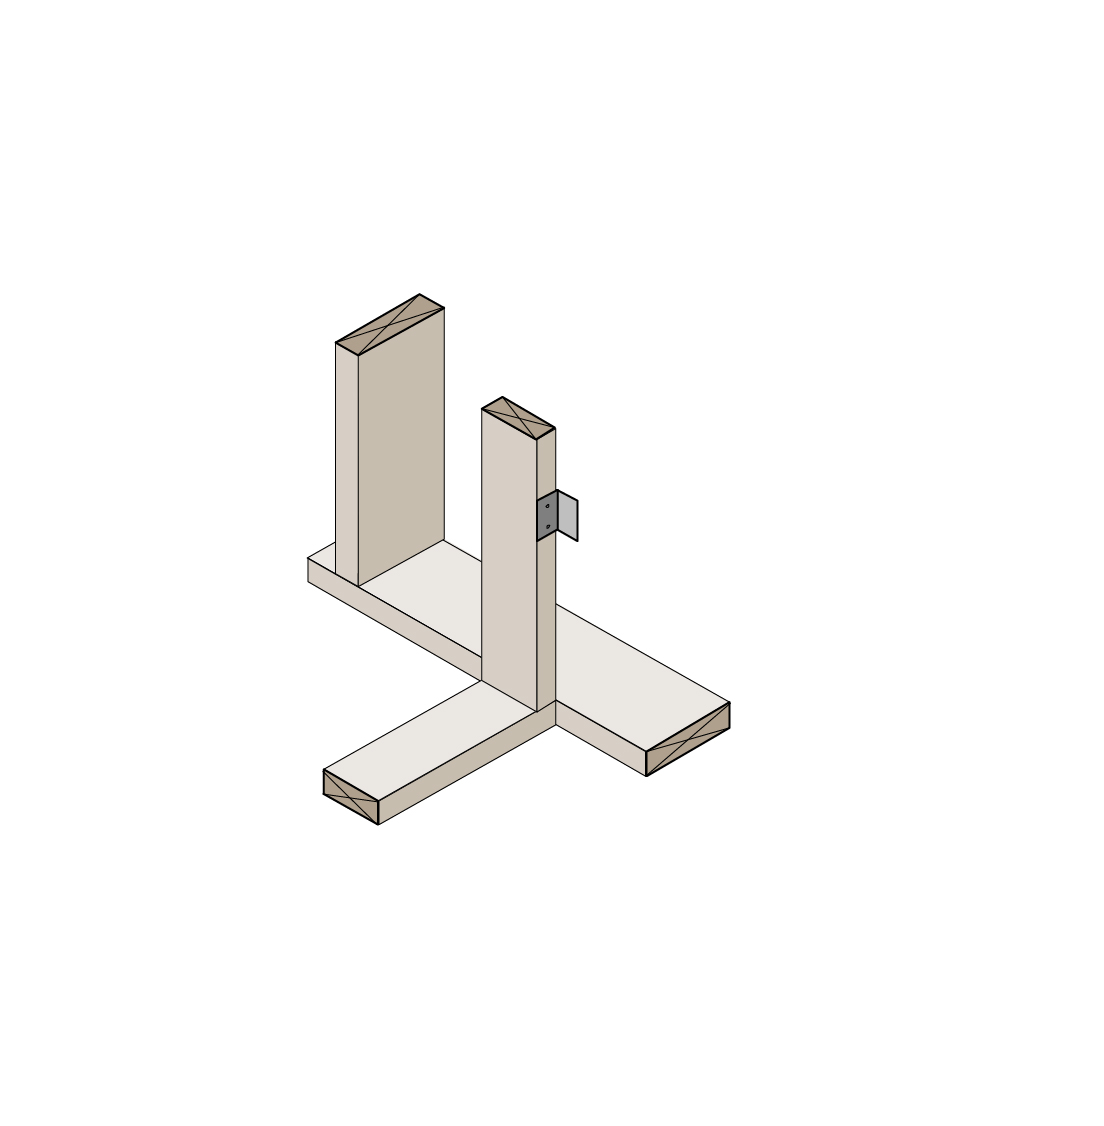 Interior wall attached with top plate metal connector, drywall clips support drywall, side view